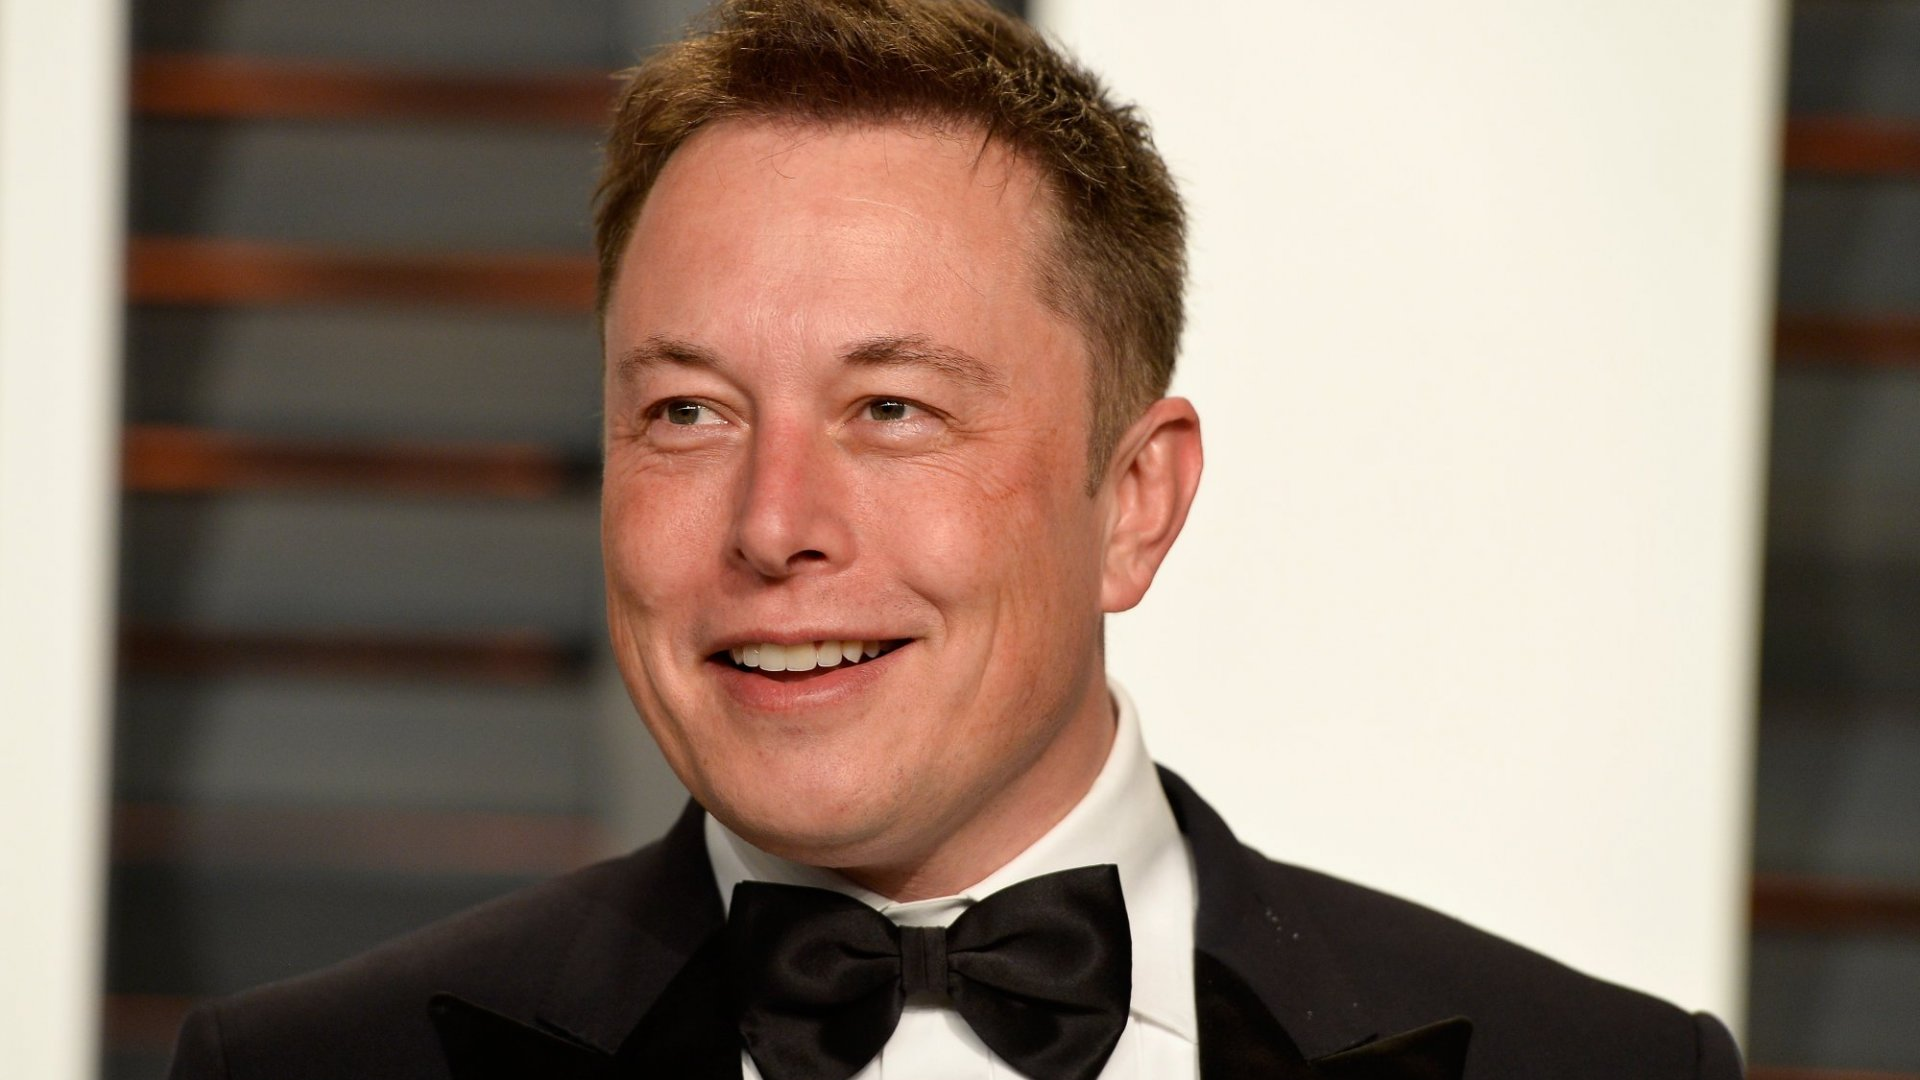 In Just 9 Words, Elon Musk Shows Us How to Be Visionary Leaders